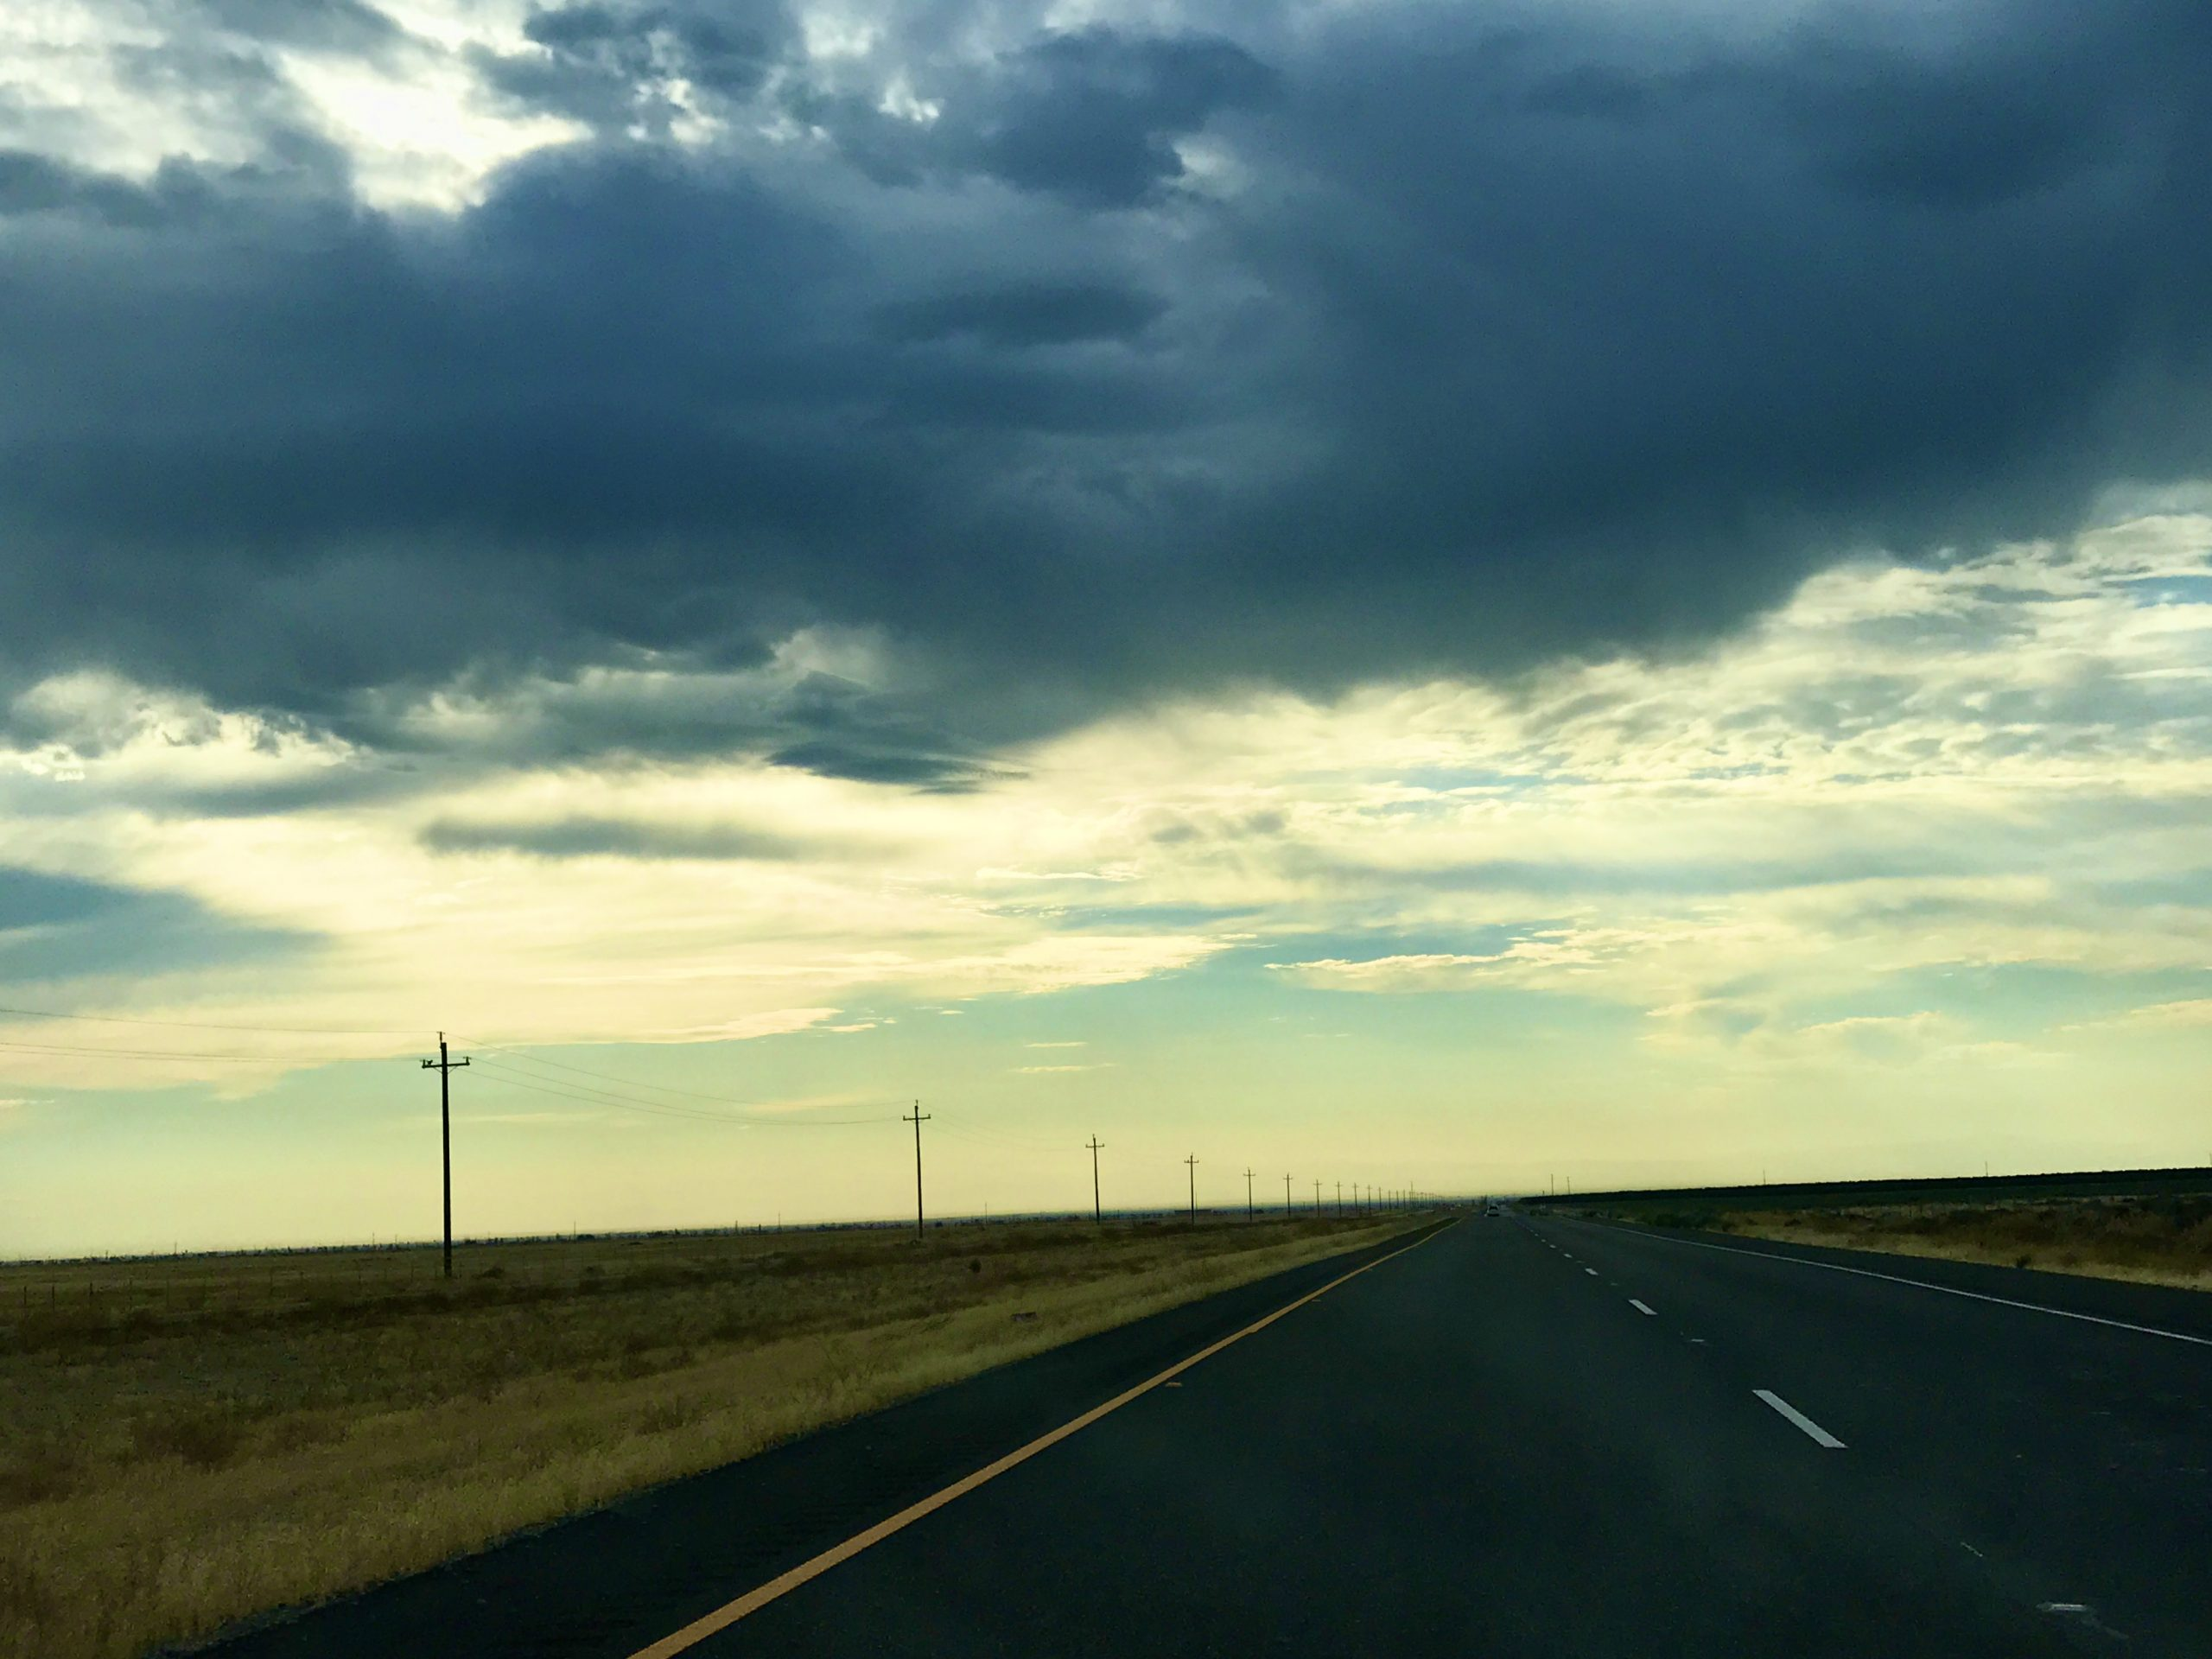 empty road with telephone poles and cloudy skies in Central California